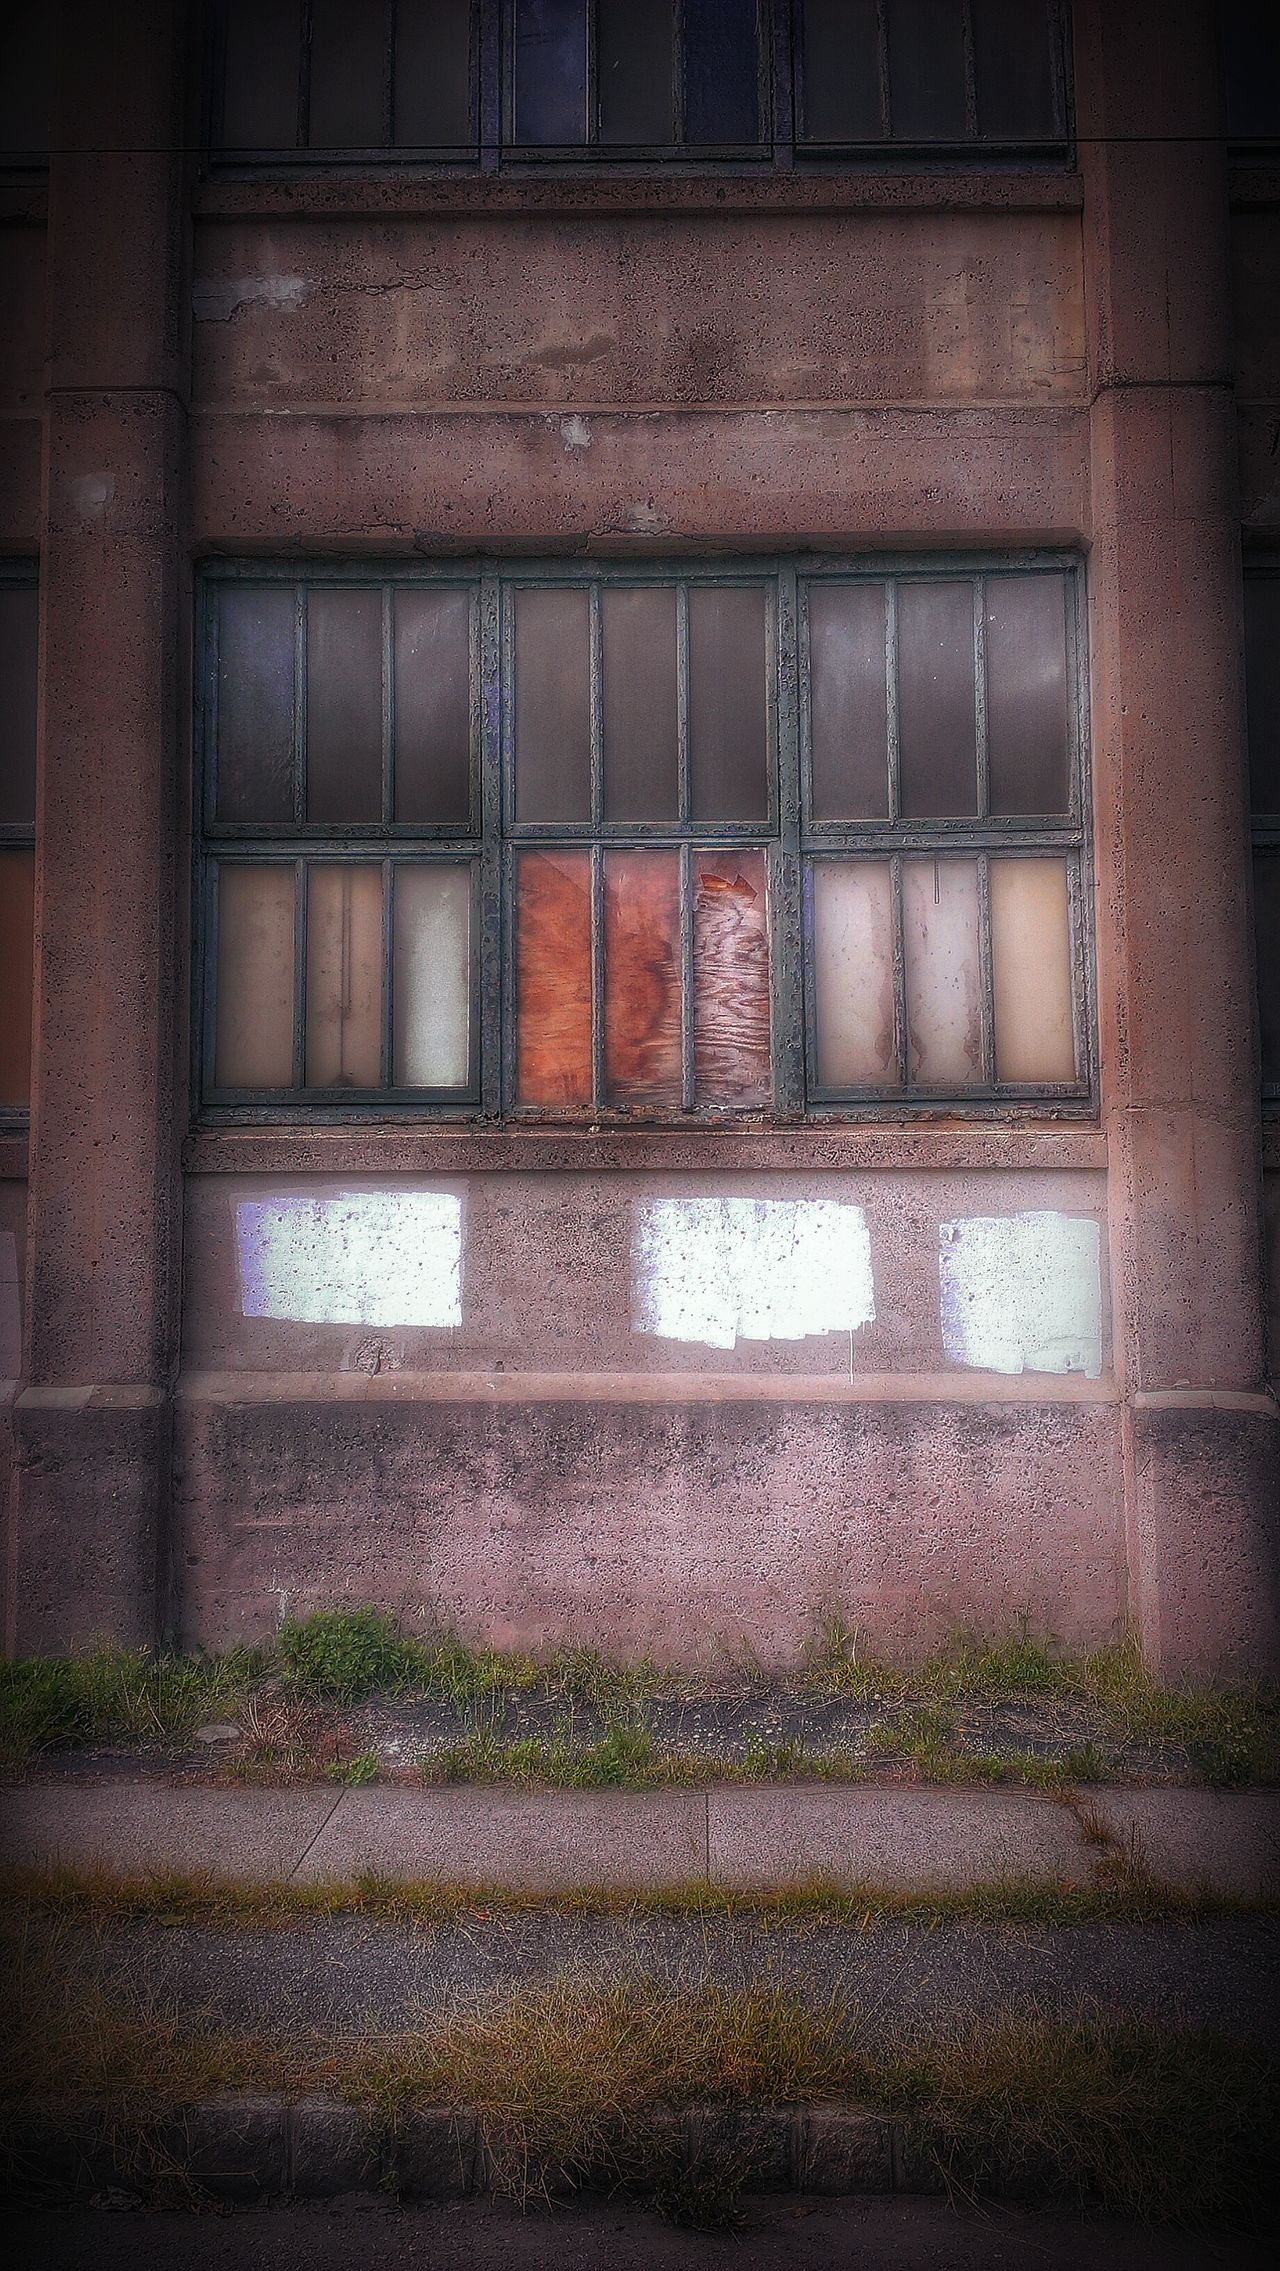 Eye Of The Tiger... Window Outdoors Built Structure Brick Wall Deterioration Urban Tresspassing For Art Abandoned & Derelict Urbexphotography Abandoned Buildings No People AMPt - Abandon Abandoned Places AMPt - My Perspective AMPt - Street Building Exterior Broken Window Weathered Abandoned Urbanphotography Urban Lifestyle Pastel Power